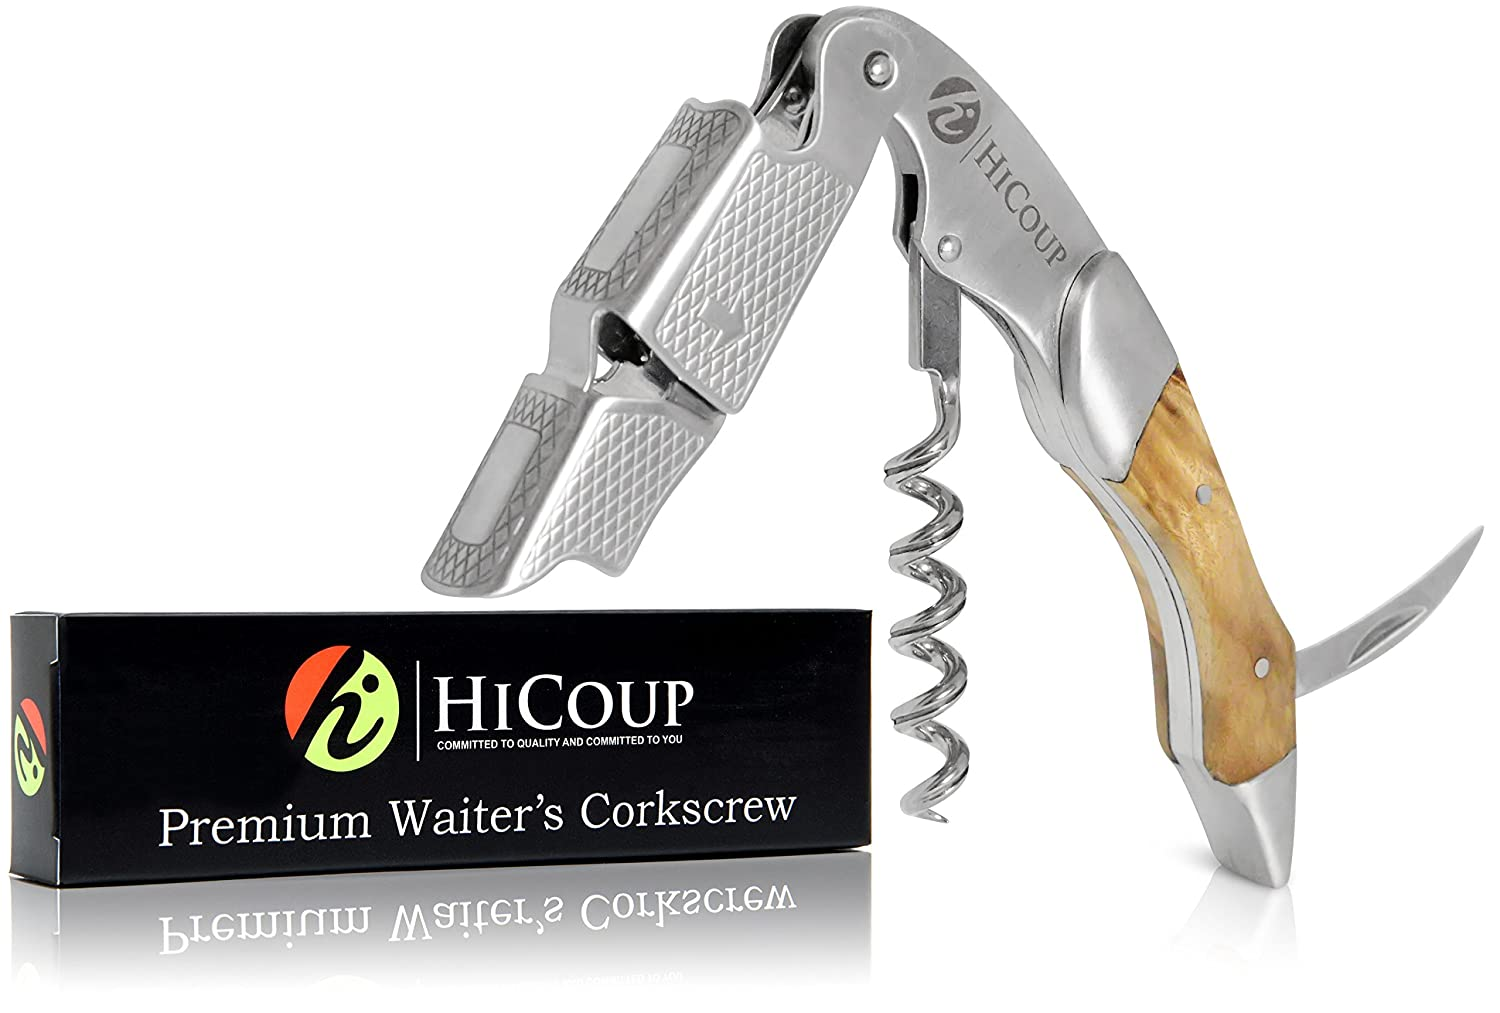 Professional Waiter's Corkscrew by HiCoup – Bai Ying Wood Handle All-in-one Corkscrew, Bottle Opener and Foil Cutter, The Favored Choice of Sommeliers, Waiters and Bartenders Around The World HiCoup Kitchenware HK-01-Bai Ying Wood